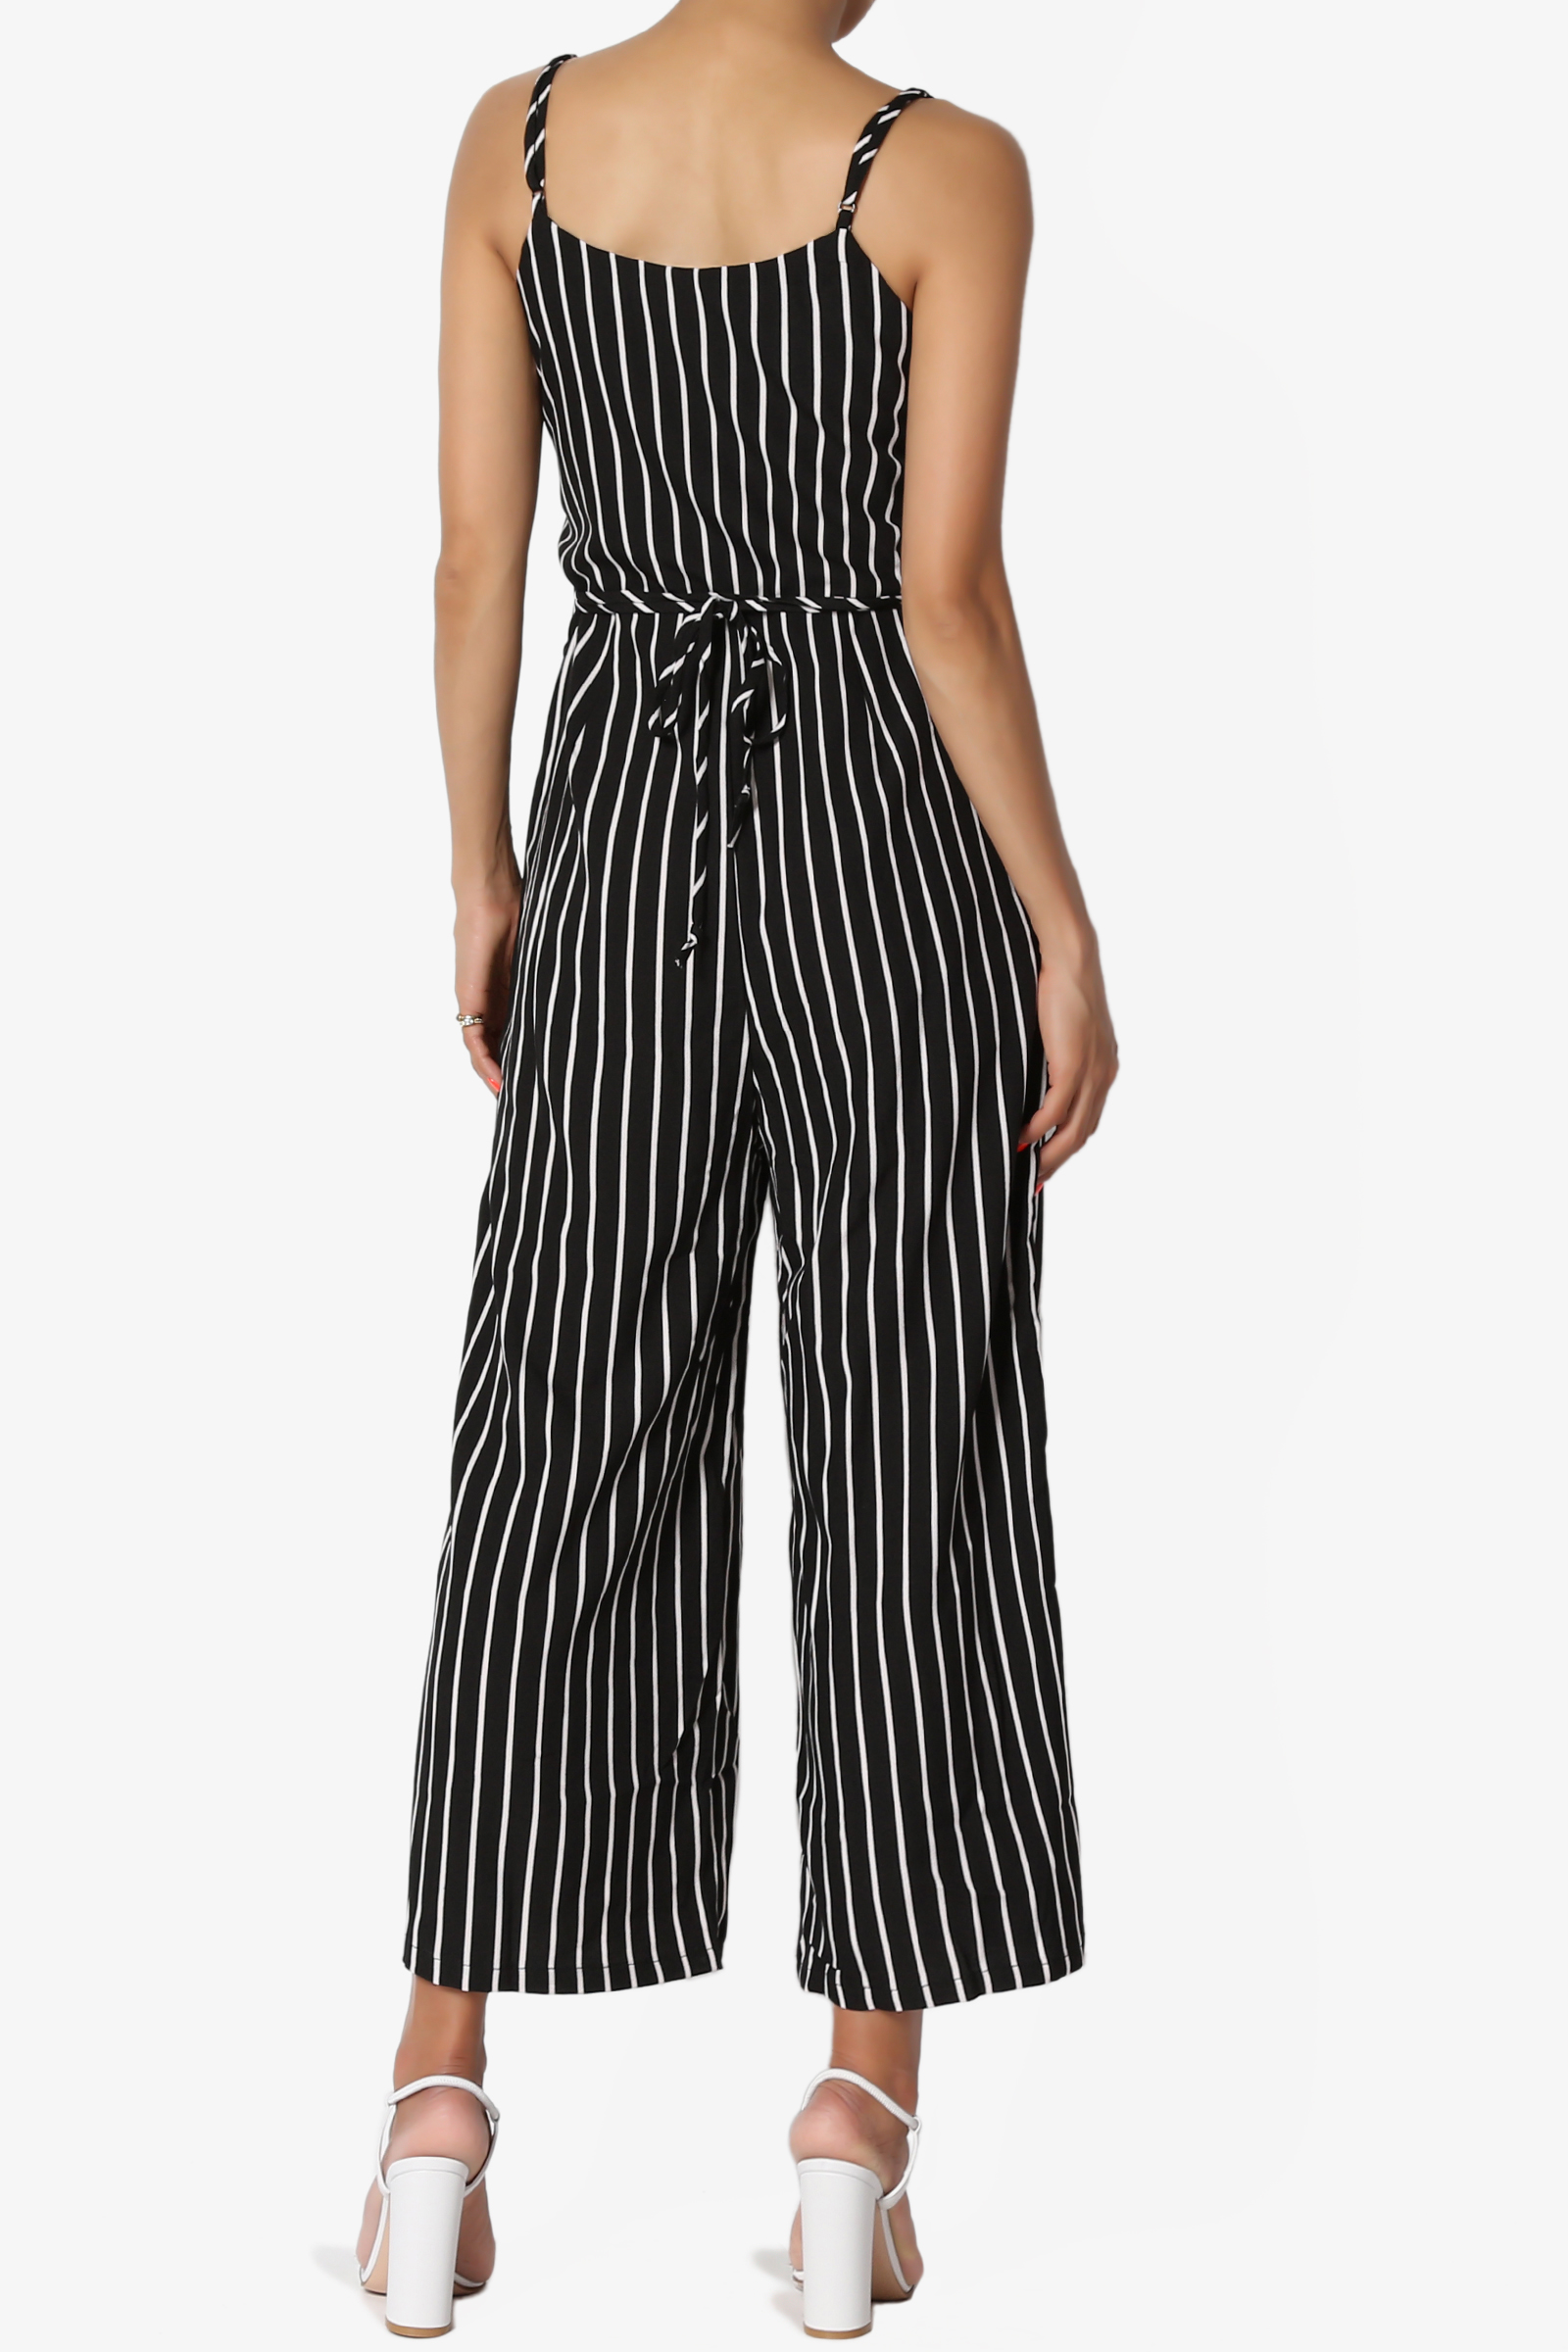 c7a295455c0f TheMogan - TheMogan Junior s Sleeveless Stripe Tie Waist Crop Wide Leg  Culotte Jumpsuit - Walmart.com